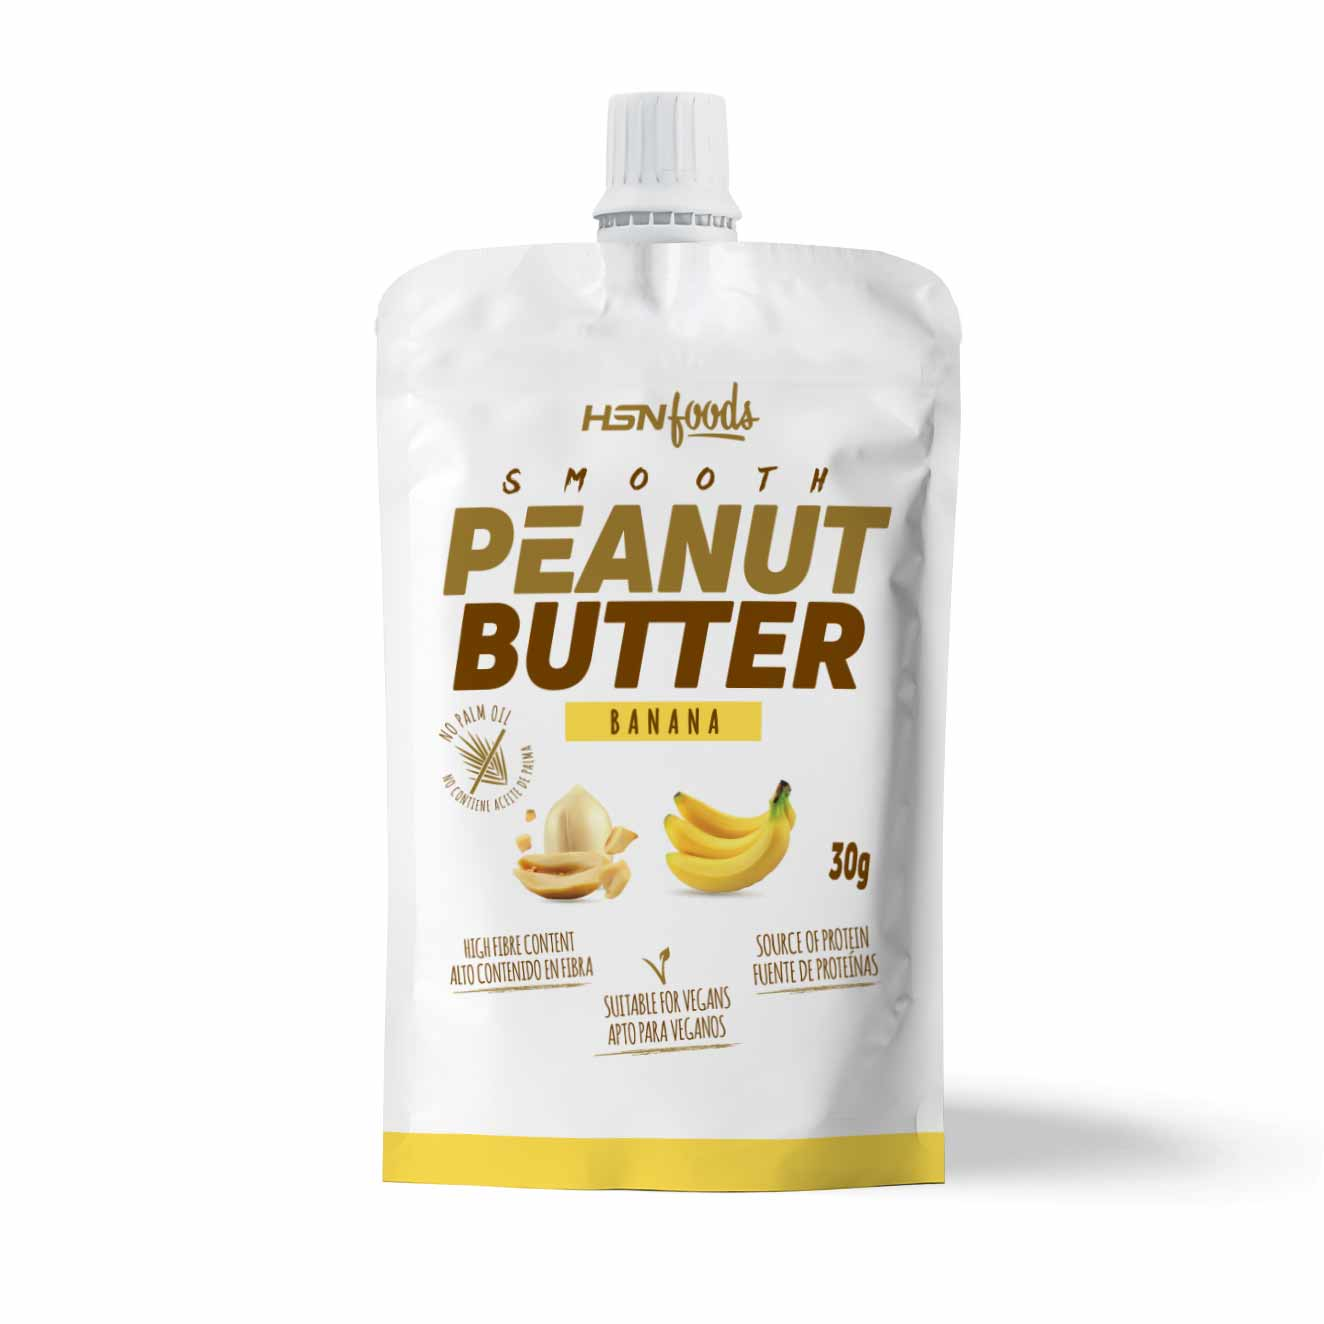 SMOOTH PEANUT BUTTER SAMPLE 30g BANANA